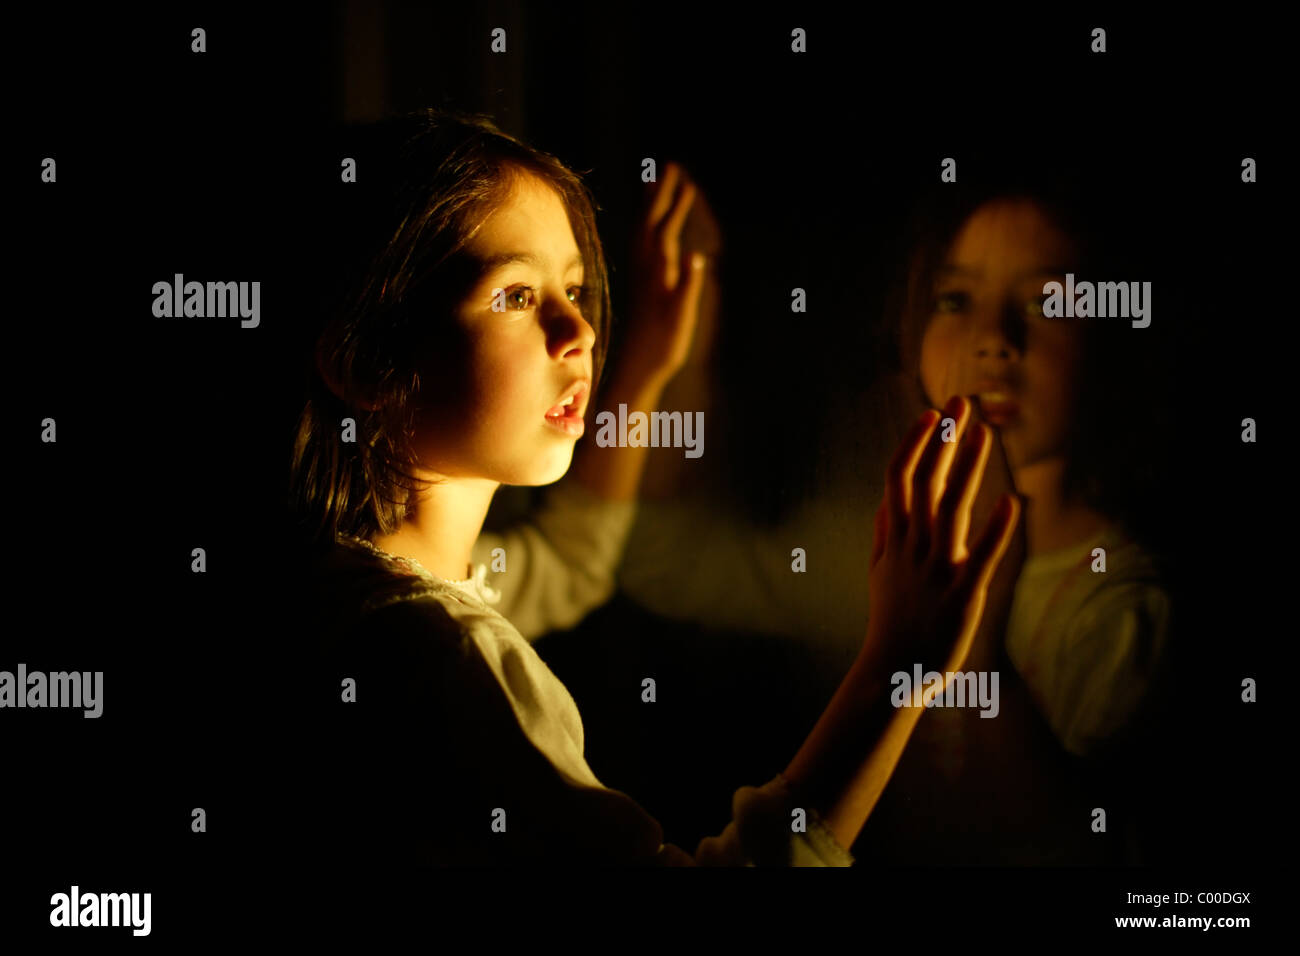 Girl at night with window reflection - Stock Image